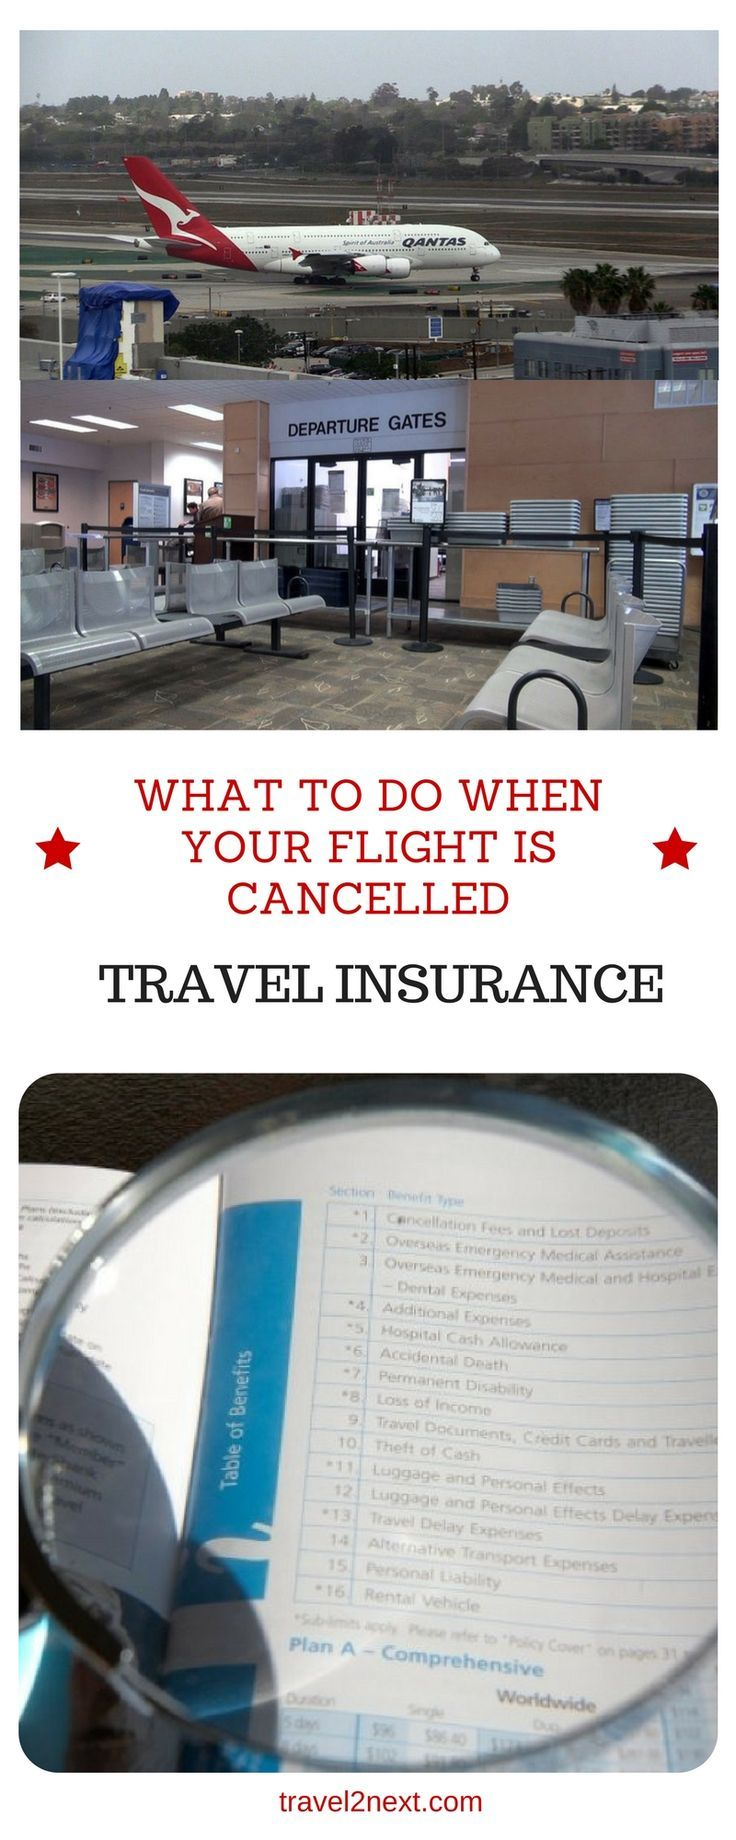 what to do when your flight is cancelled. Is travel insurance worth it? What can you claim when you miss your flight? Read on to find out what to do when your flight is cancelled.